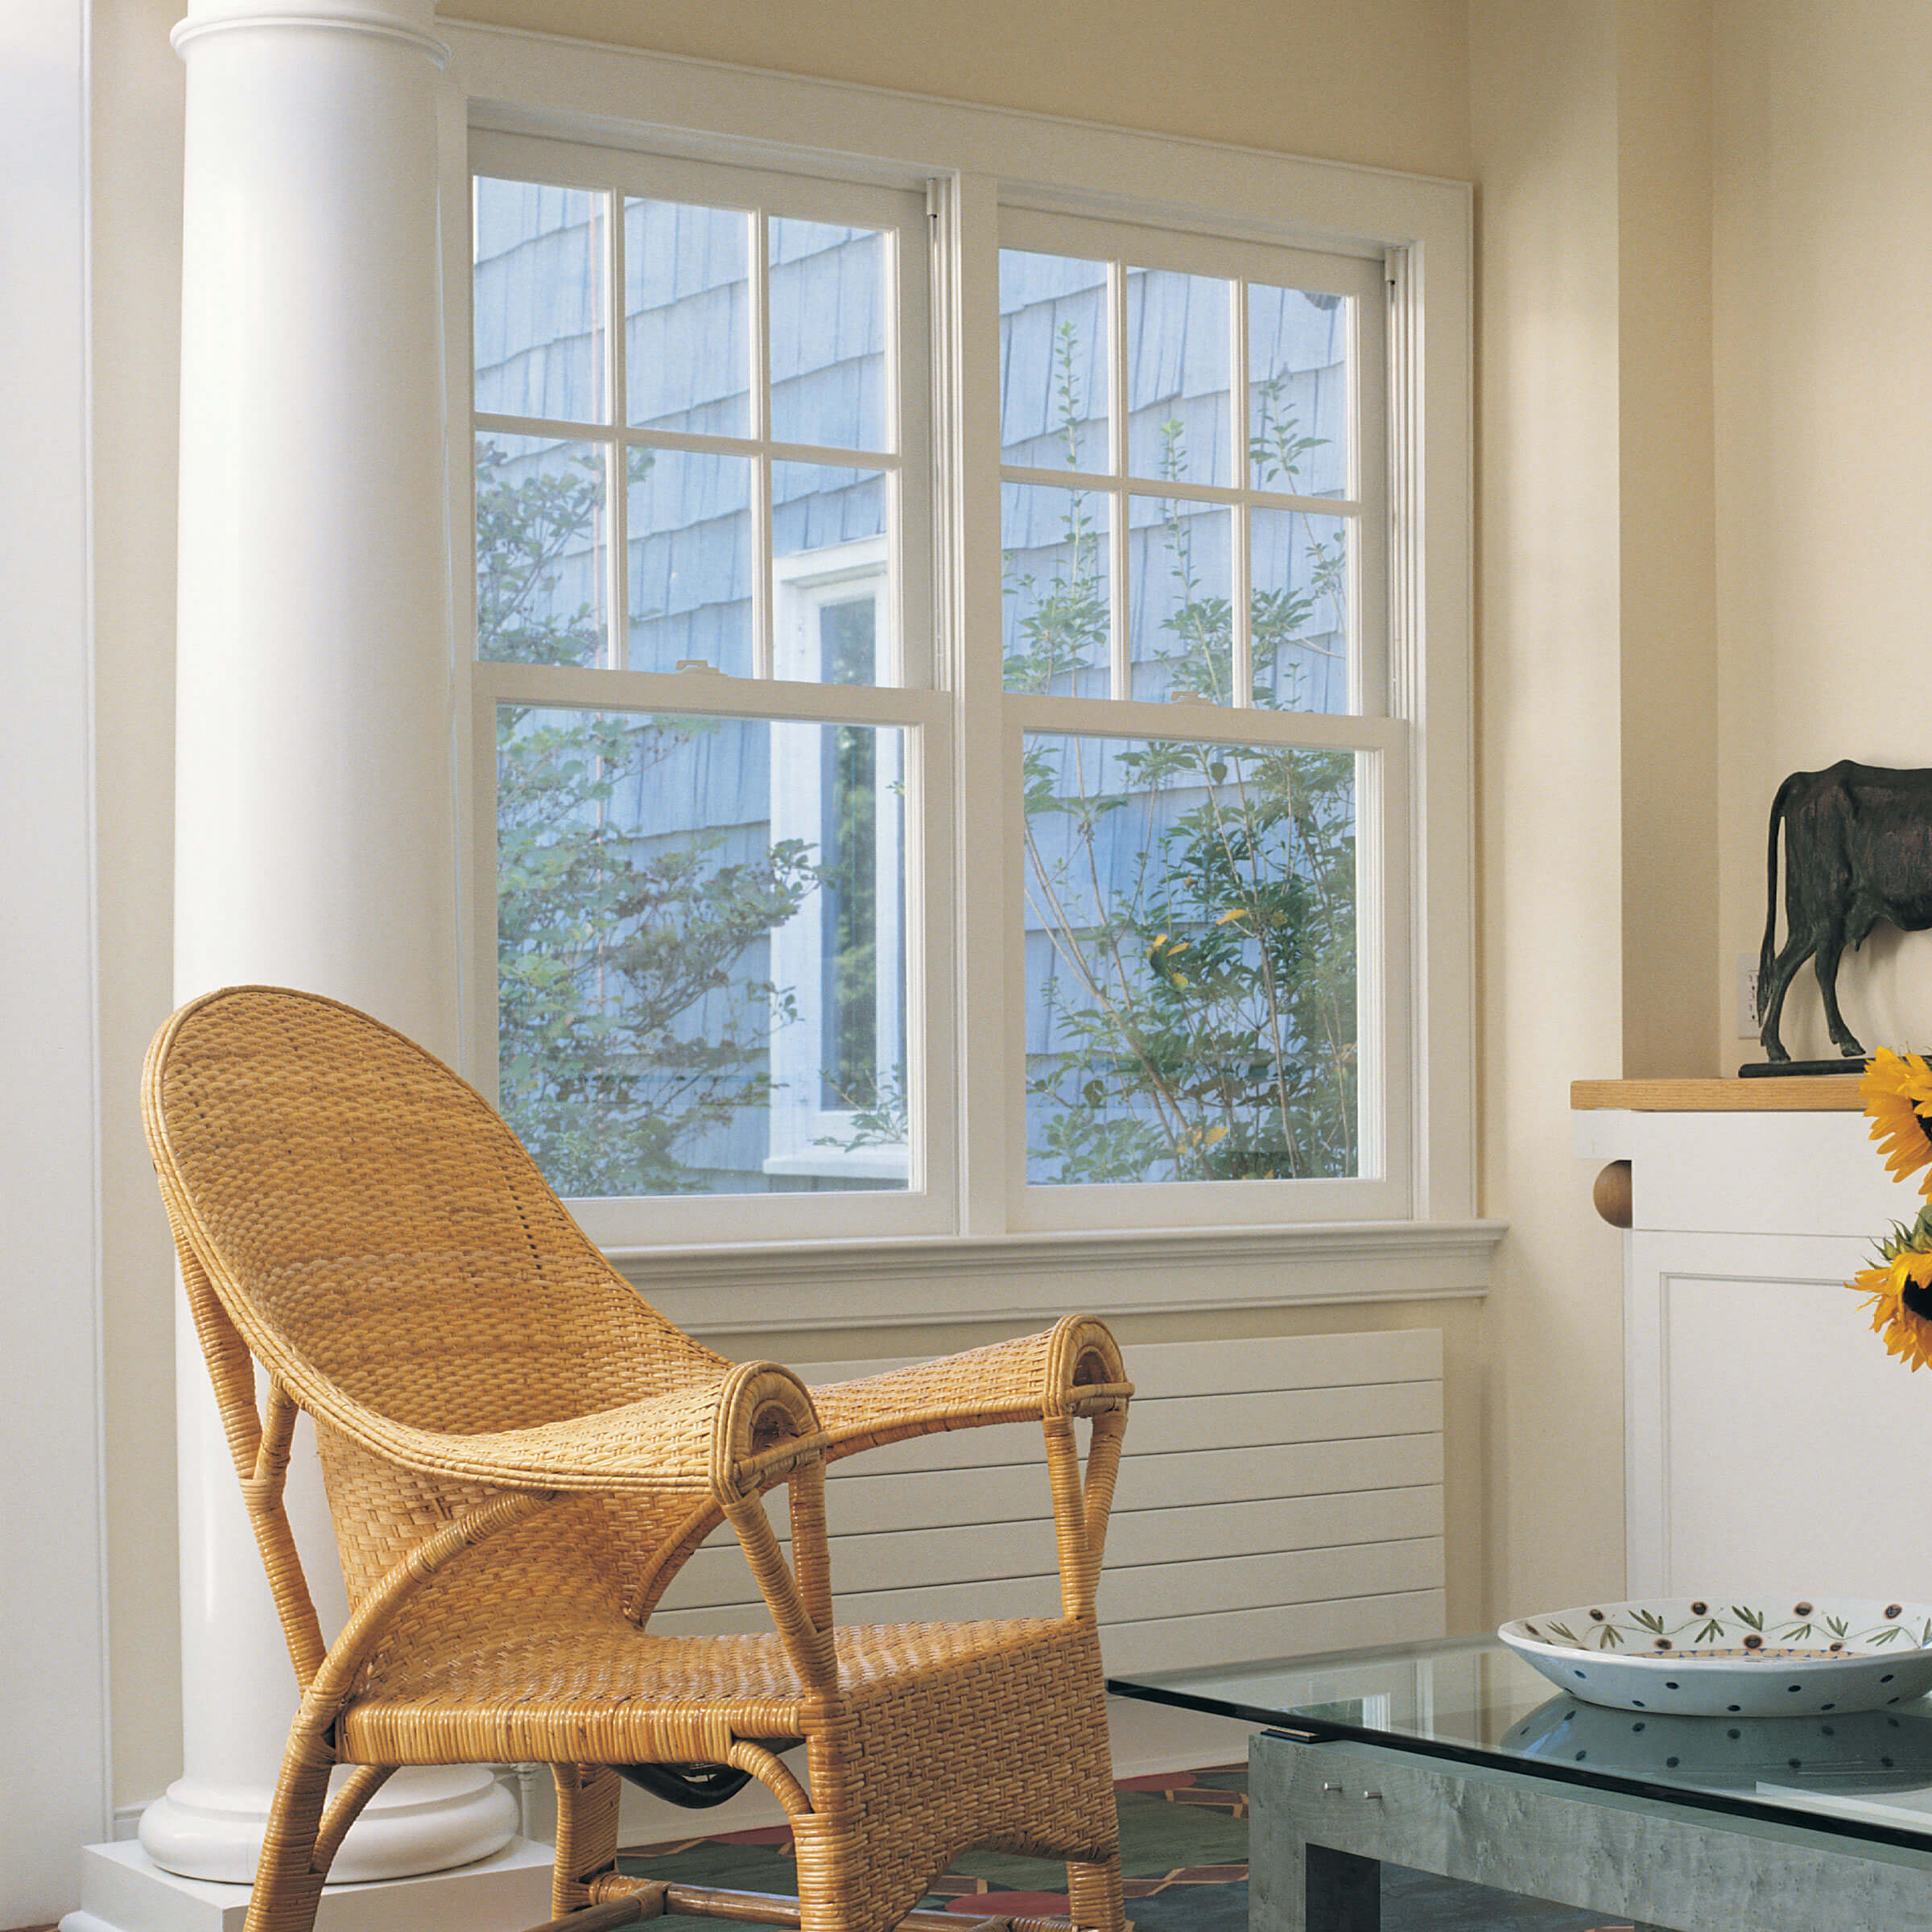 Interior View Of Room With Signature Tilt Pac Double Hung Sash Replacement System